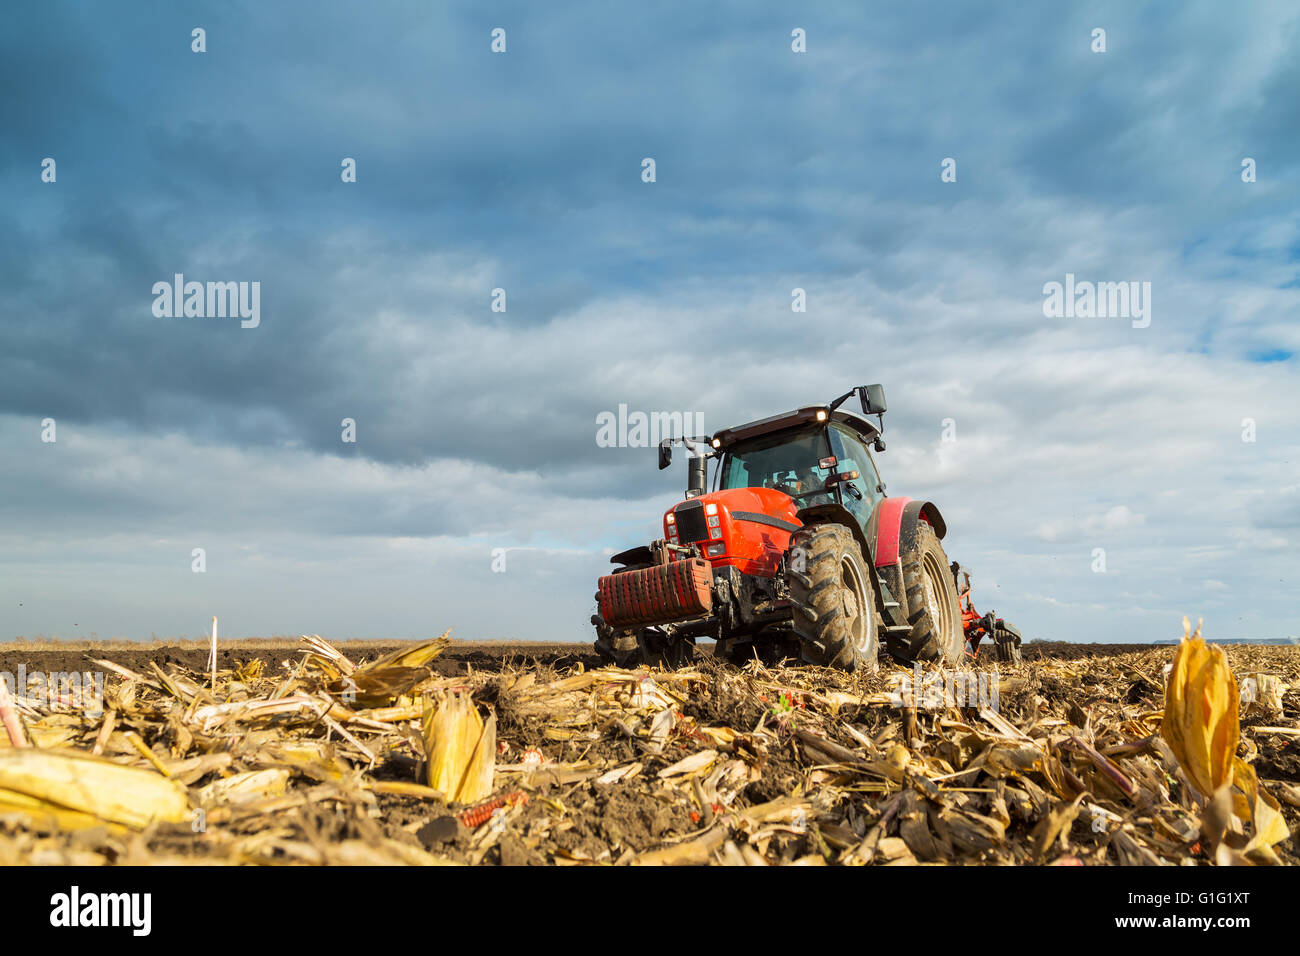 Farmer plowing with red tractor - Stock Image